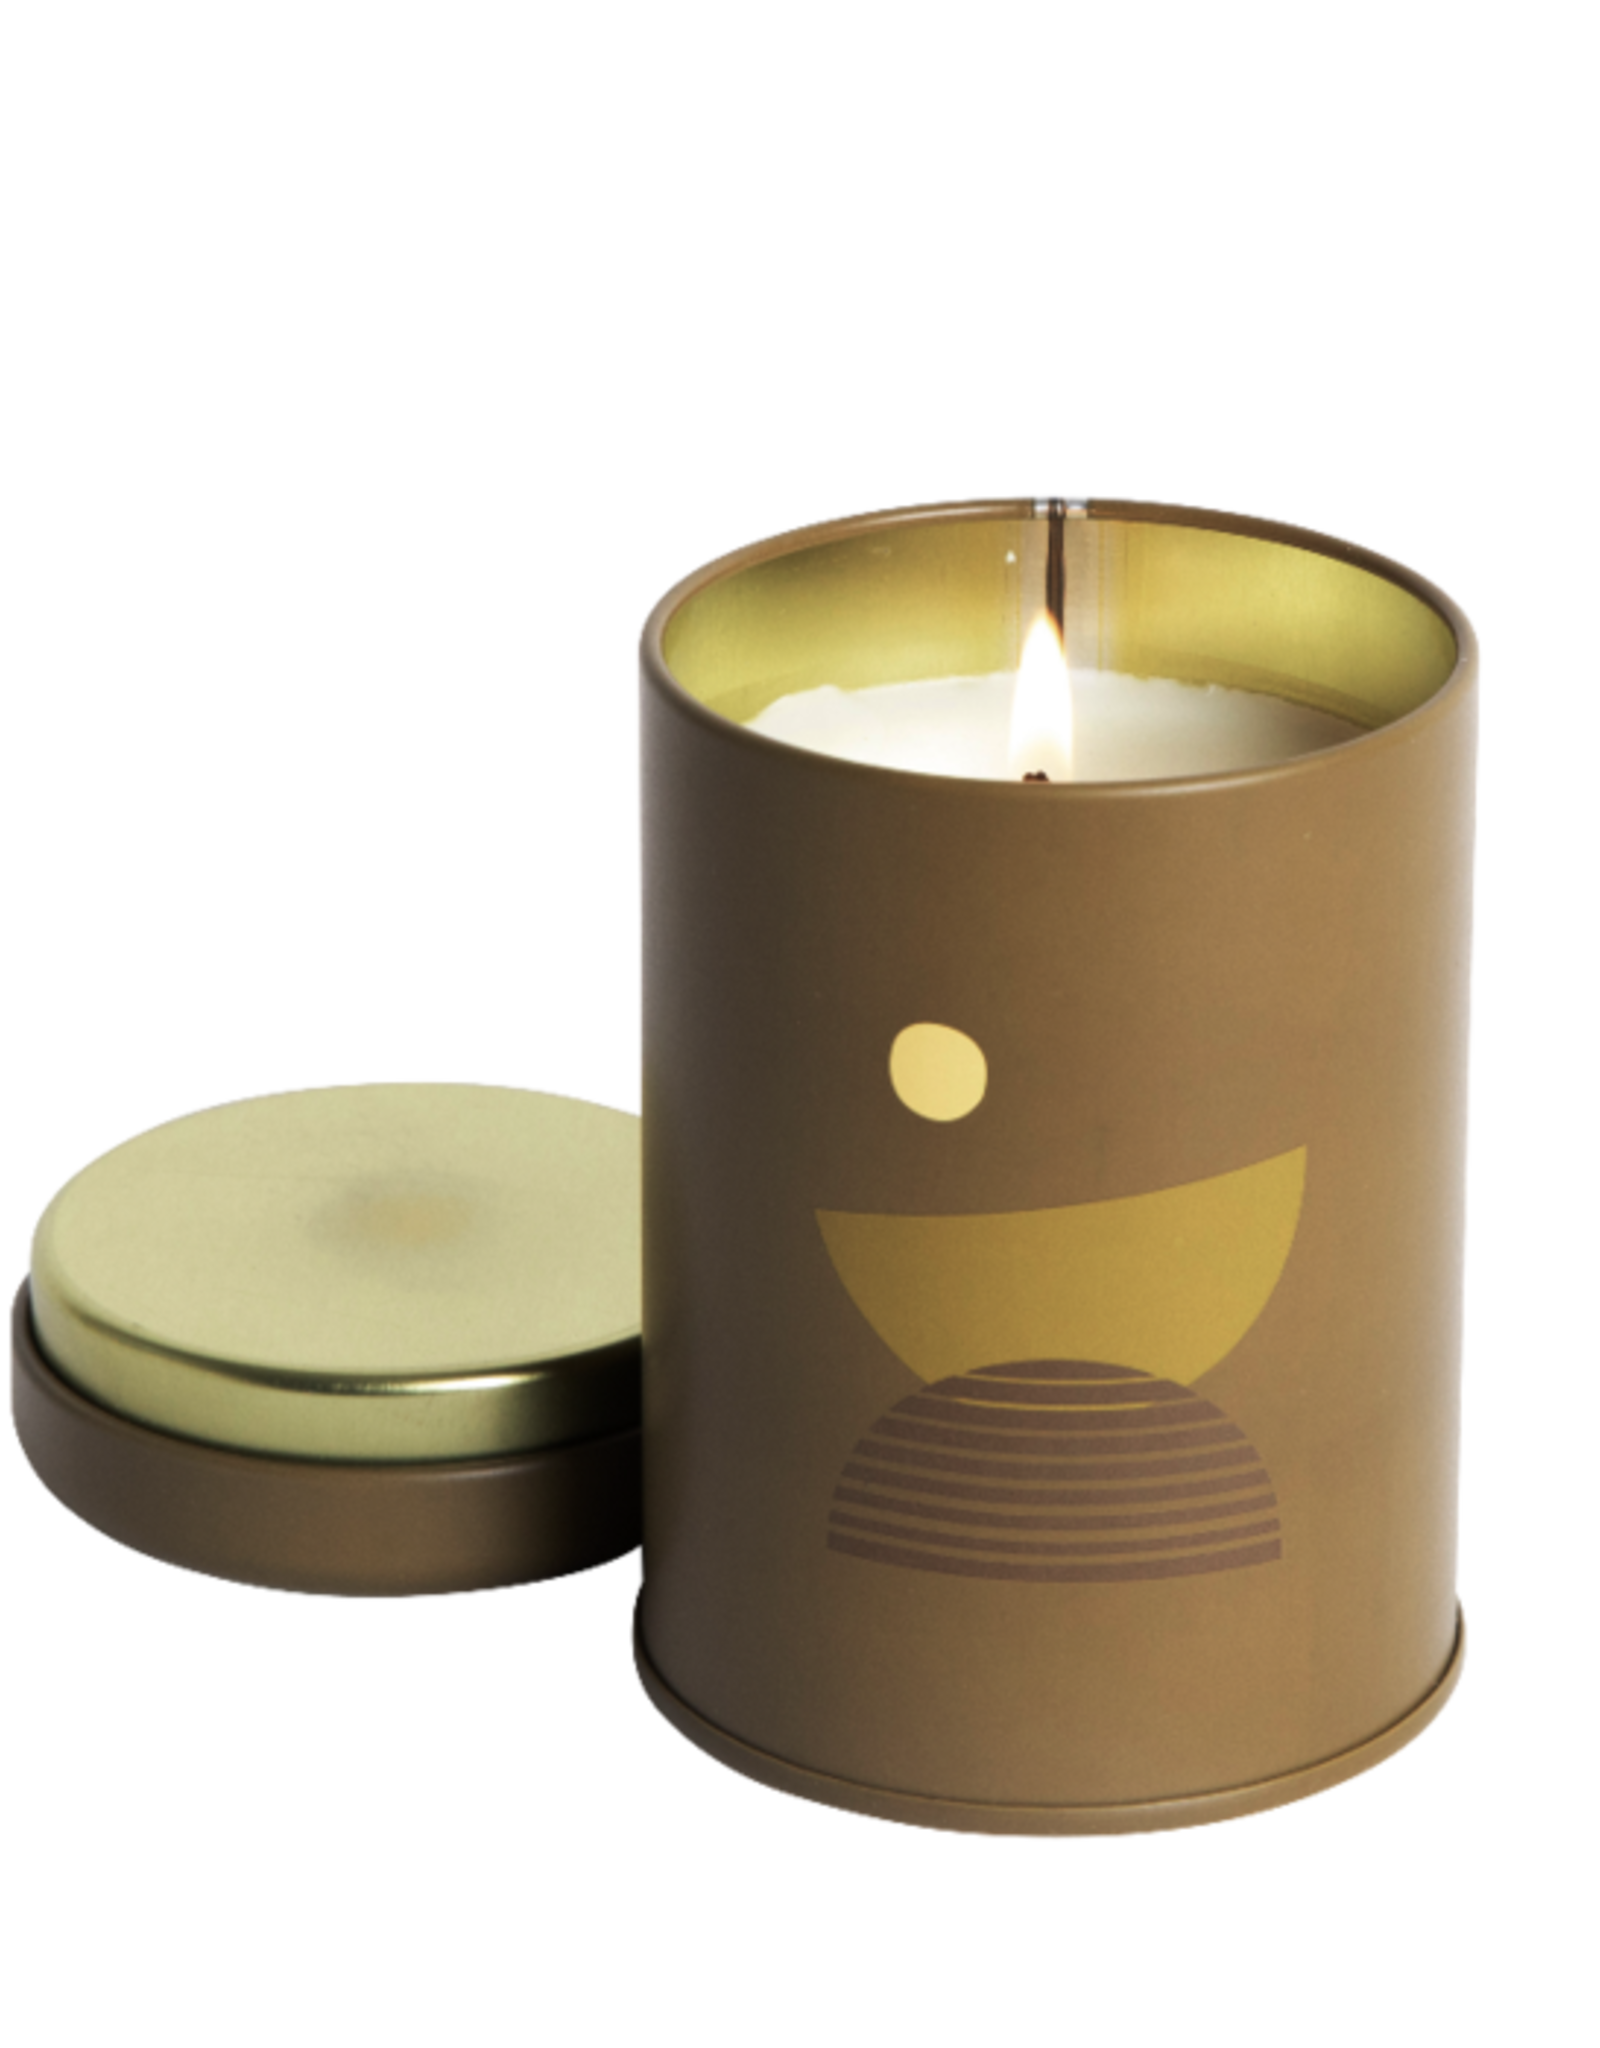 P.F Candle Co. Moonrise Candle